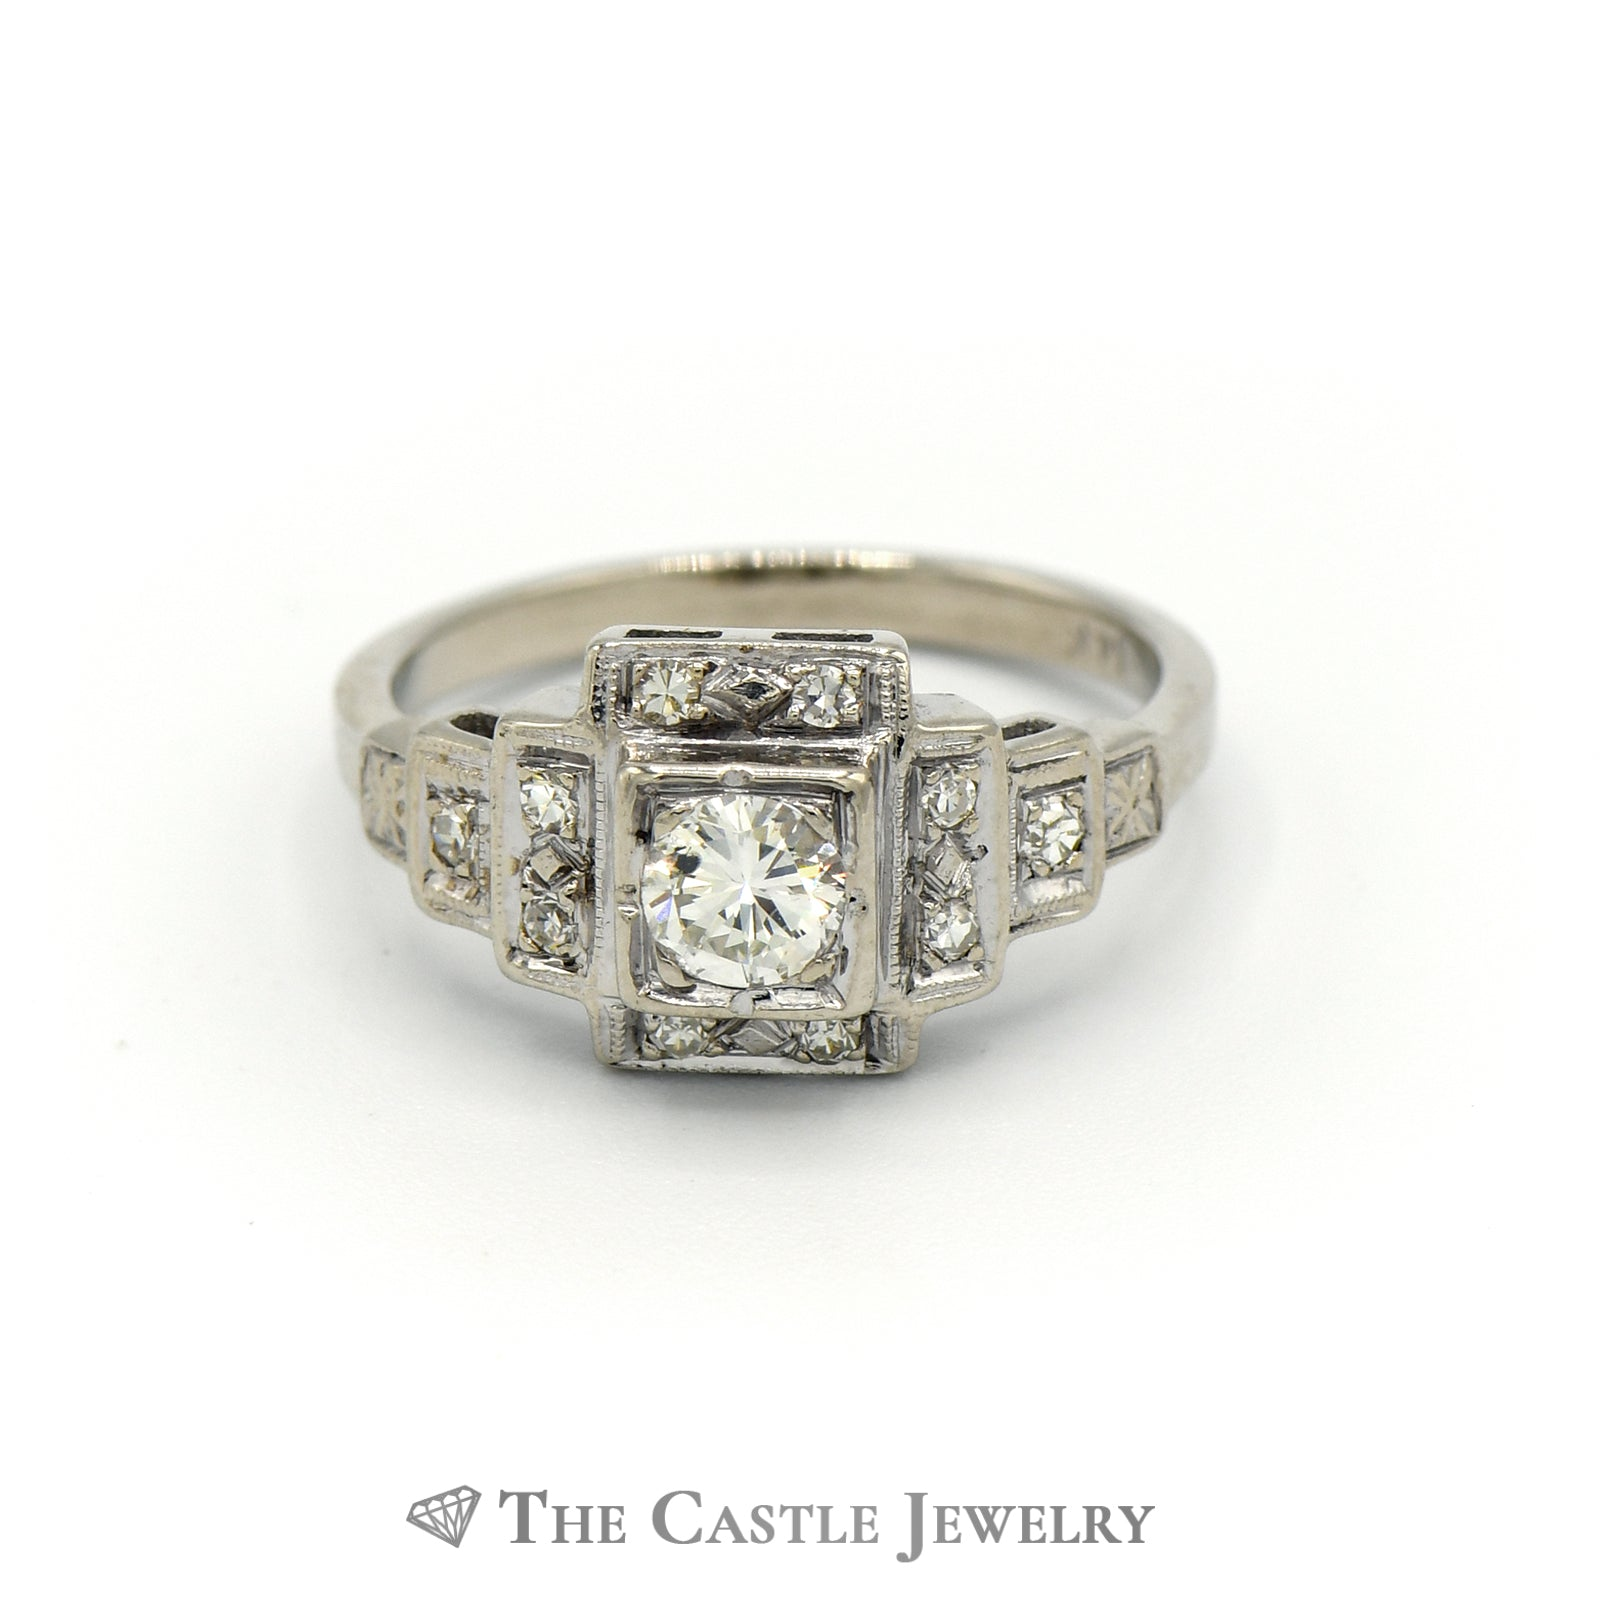 Art Deco Style Diamond Ring In 14K White Gold